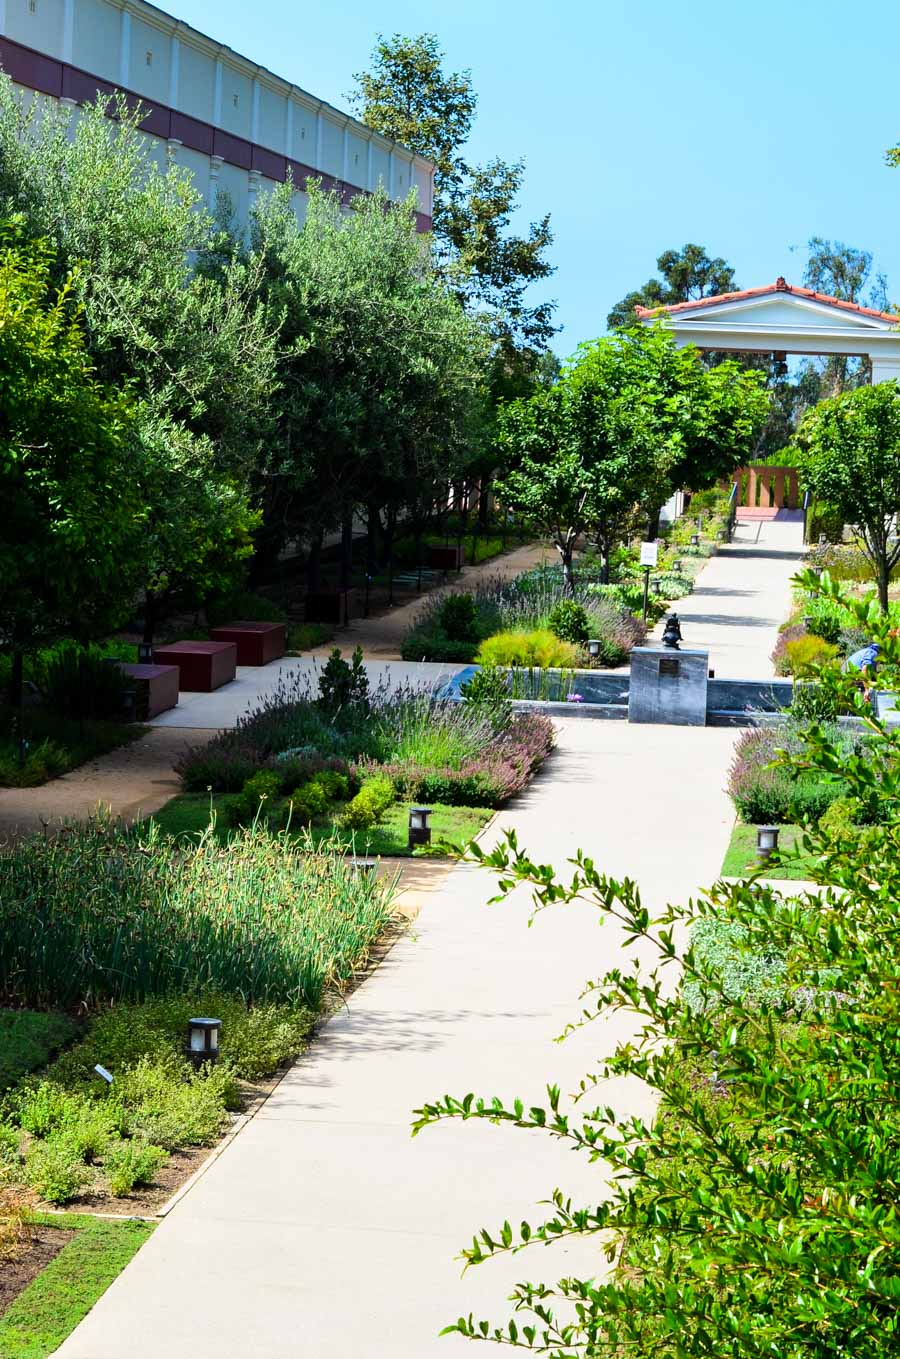 Garden Tour Getty Villa - Malibu, CA Travel Guide